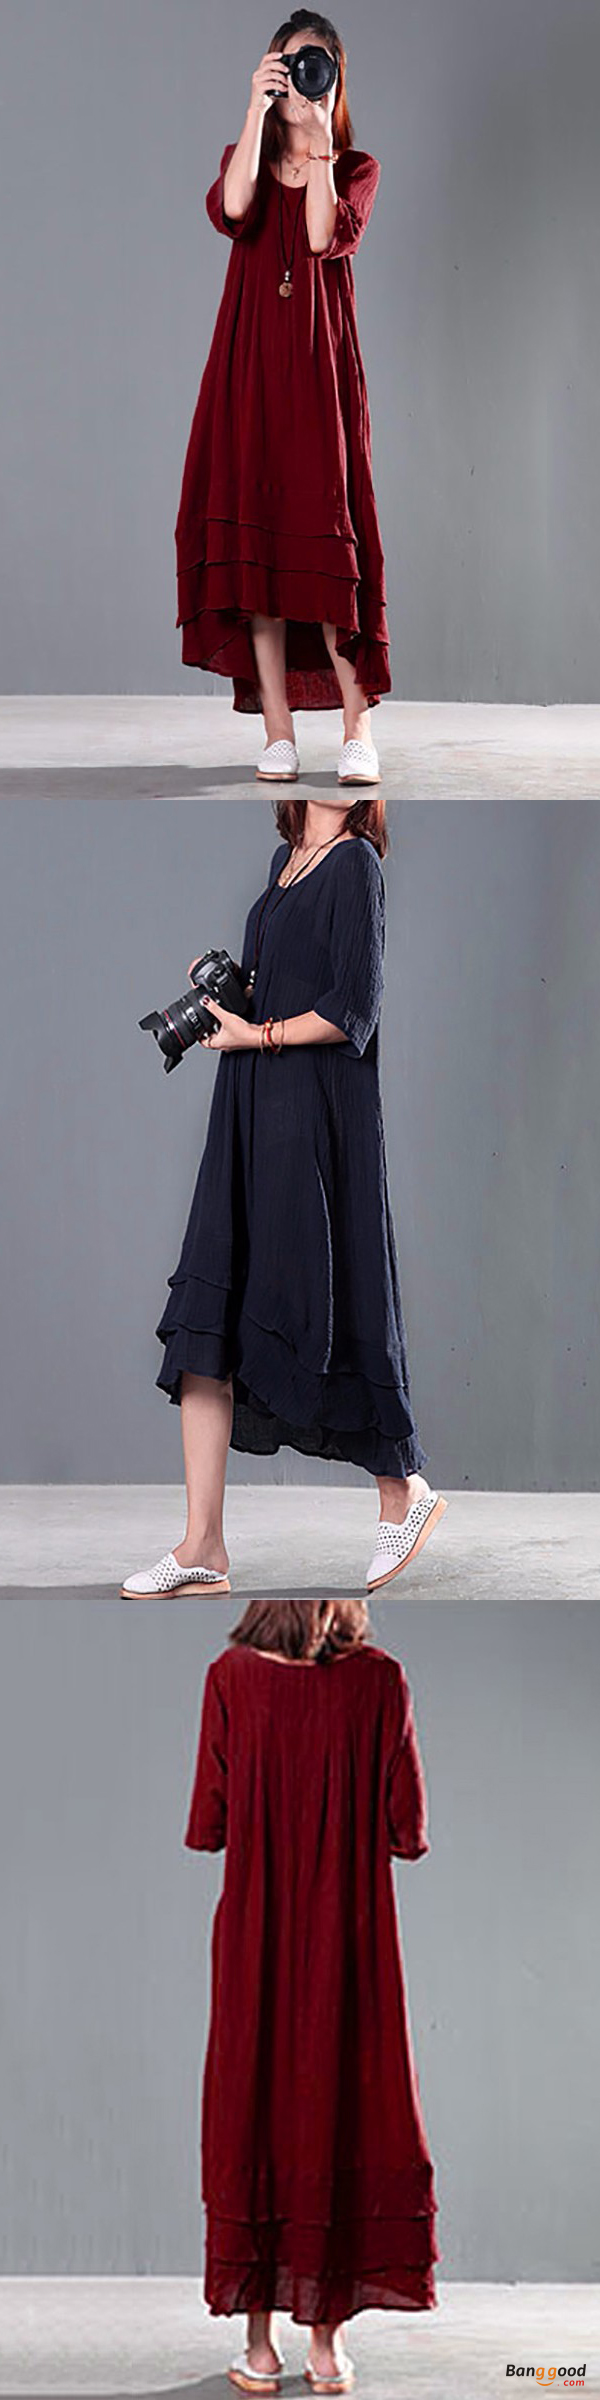 Women double layers casual dress loose cotton maxi dresses teen